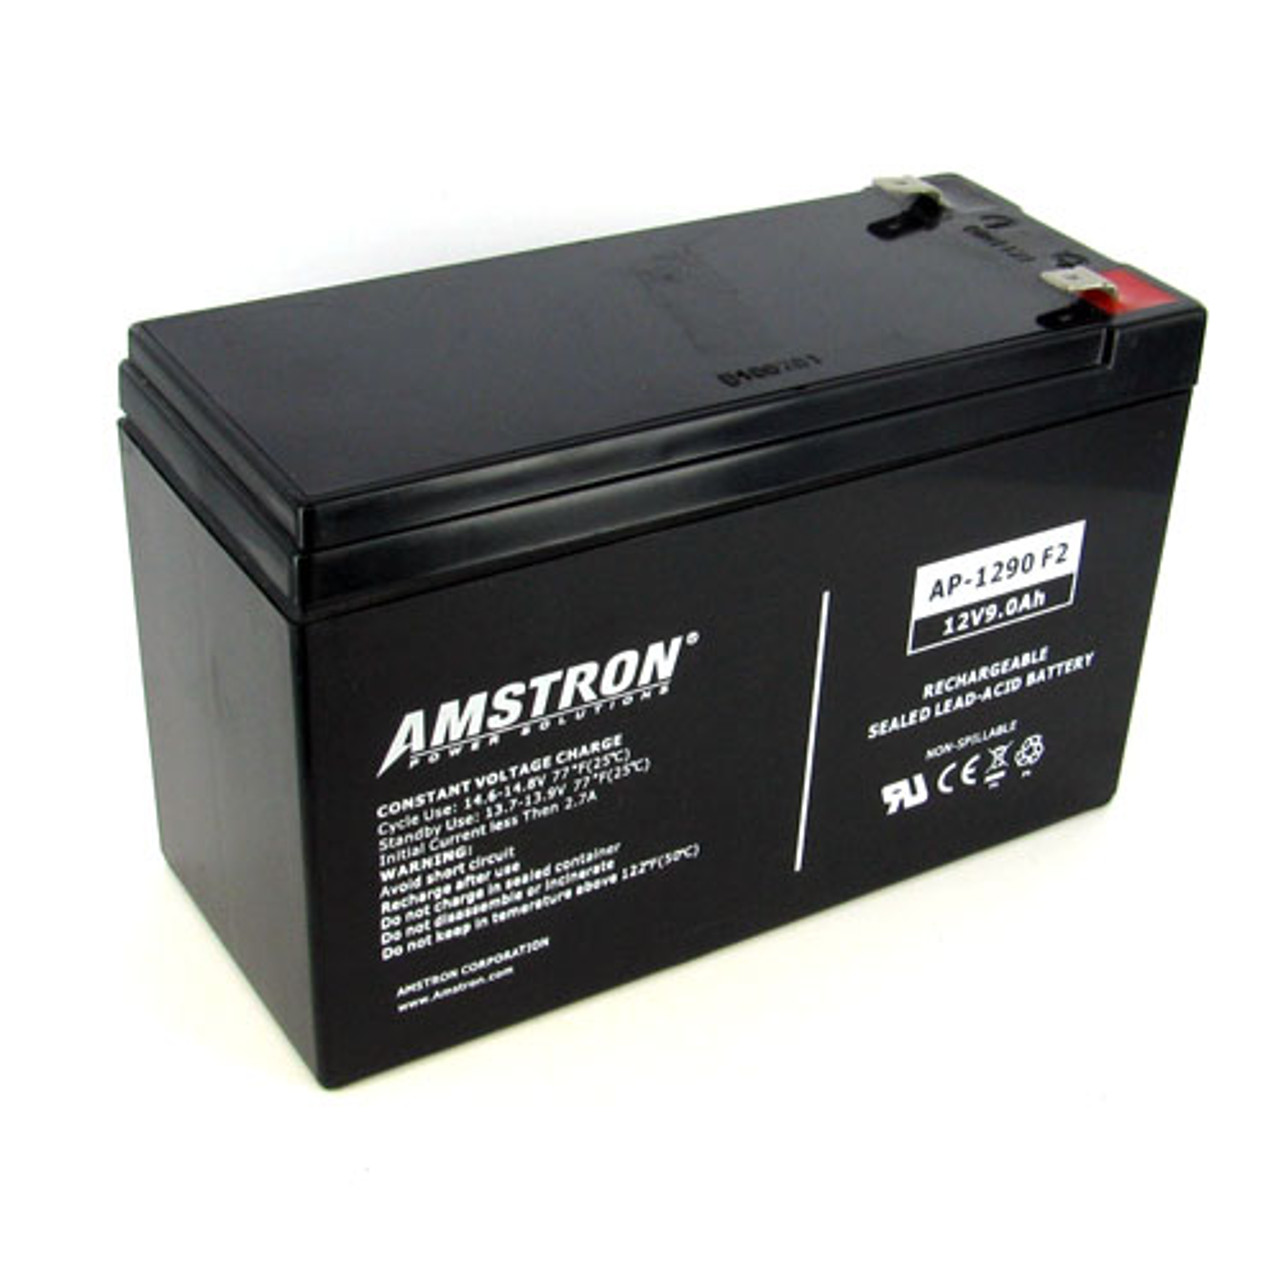 Replacement Battery for APC Back-UPS 600 BN600 12V 8Ah UPS Battery